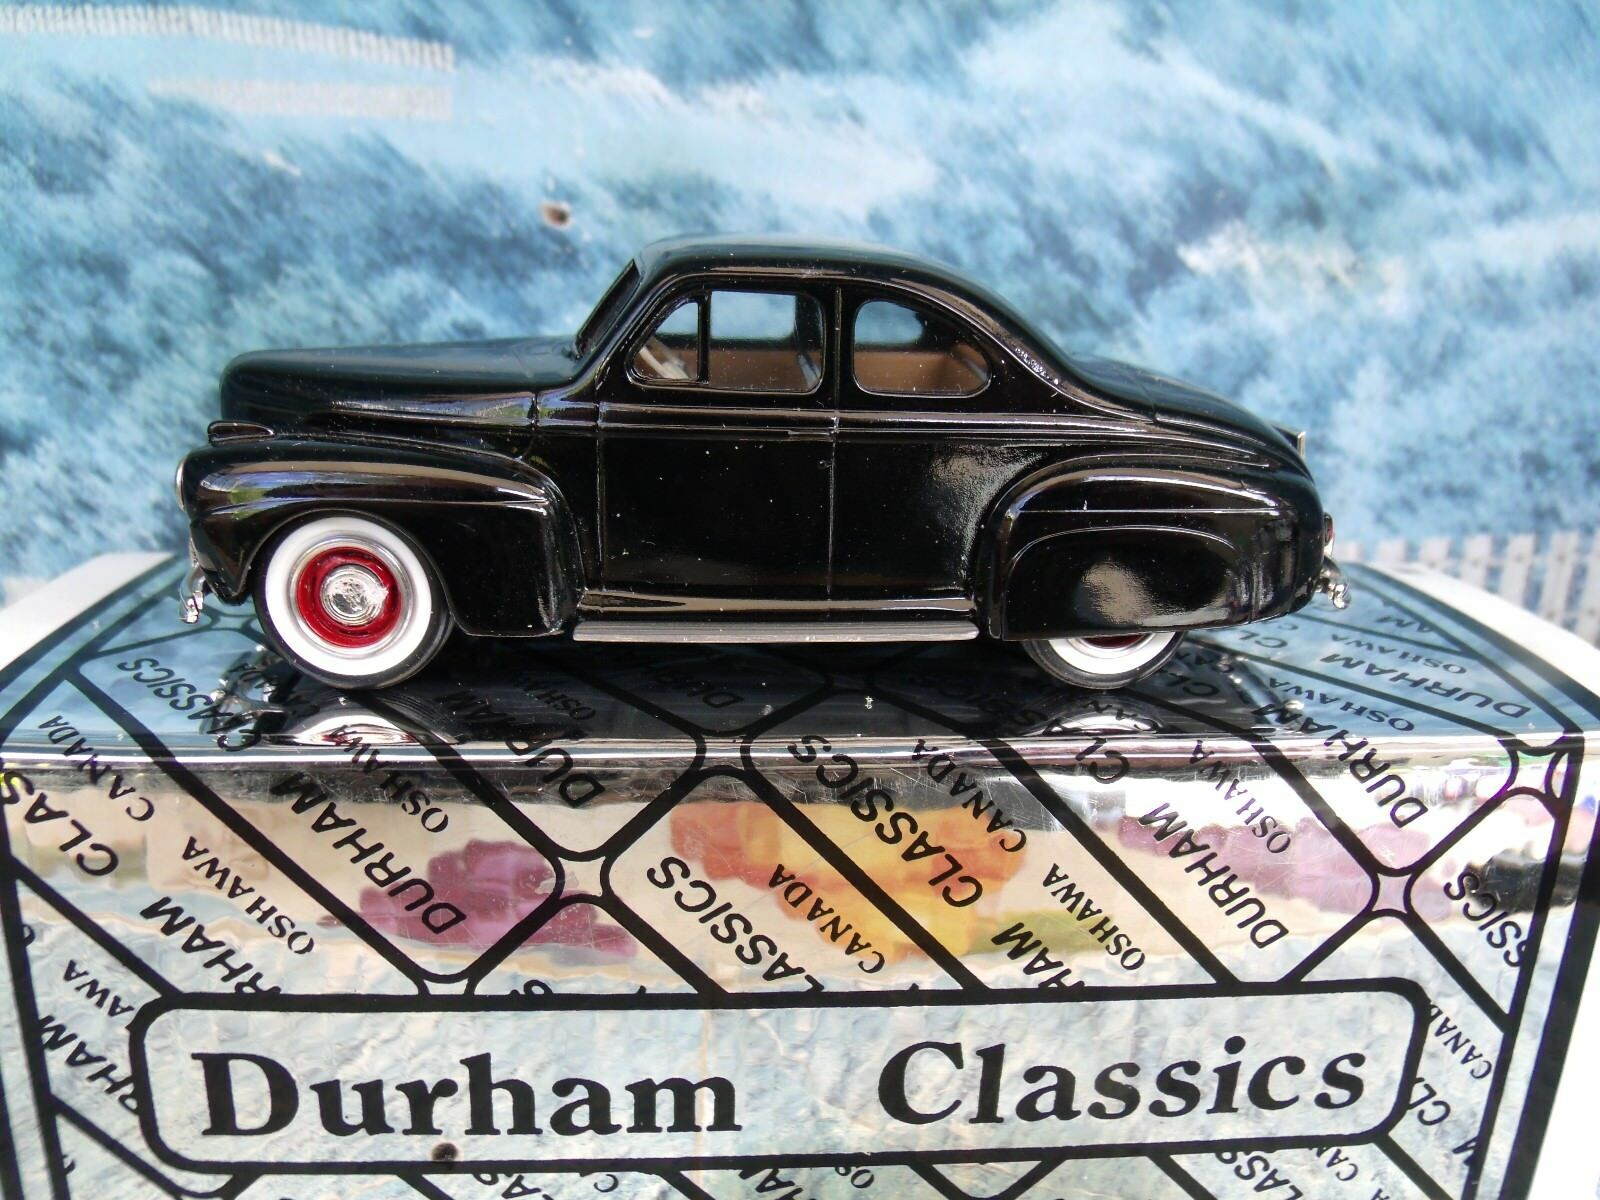 1 43 Durham classics  DC15 Ford Coupe  1941  TGoldnto Collectors Toy Show1 Of 350